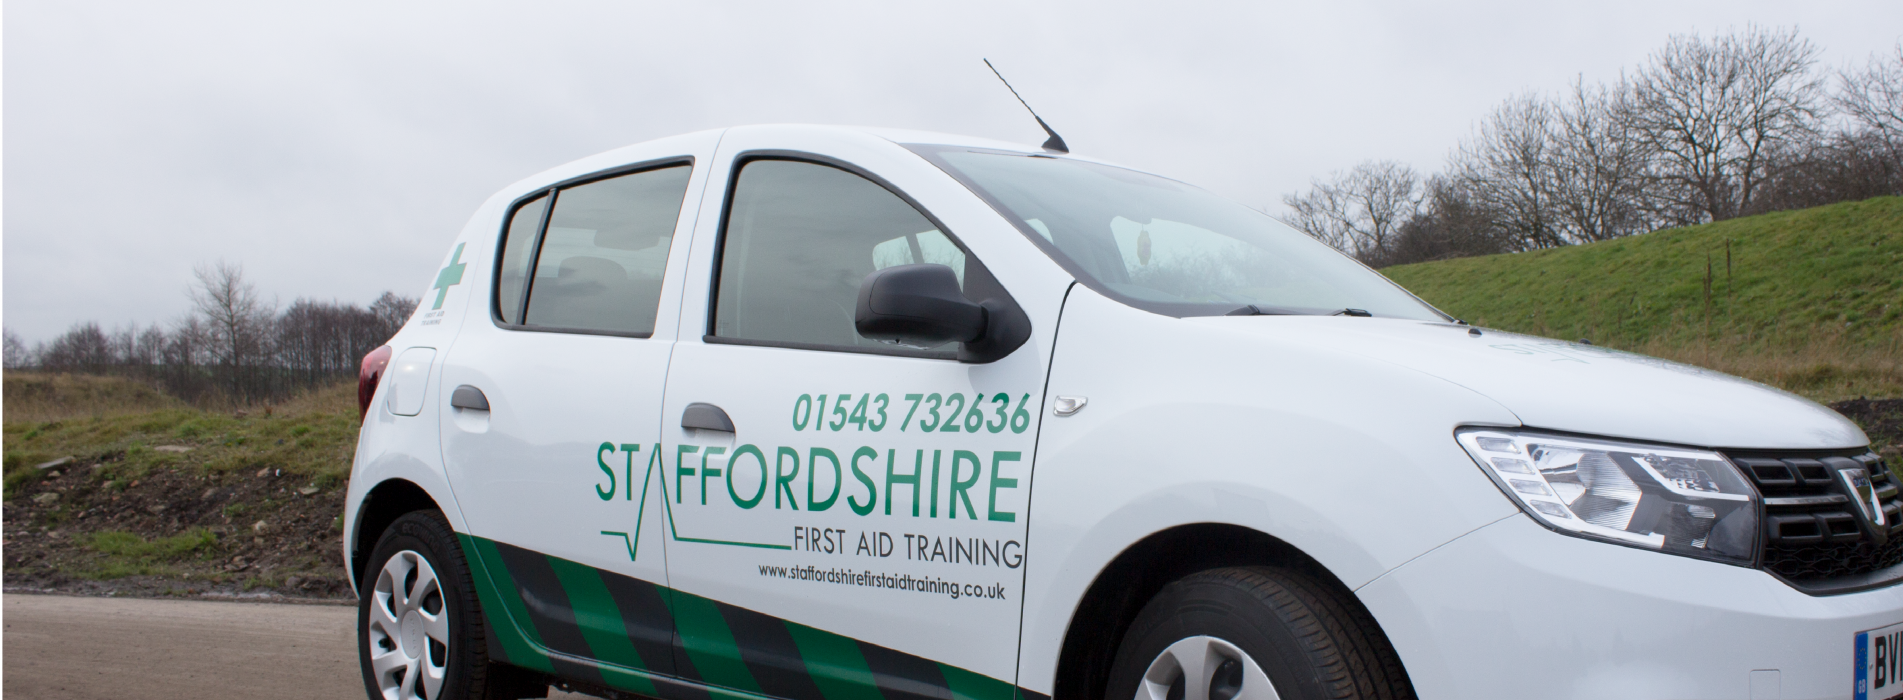 oswestry first aid training